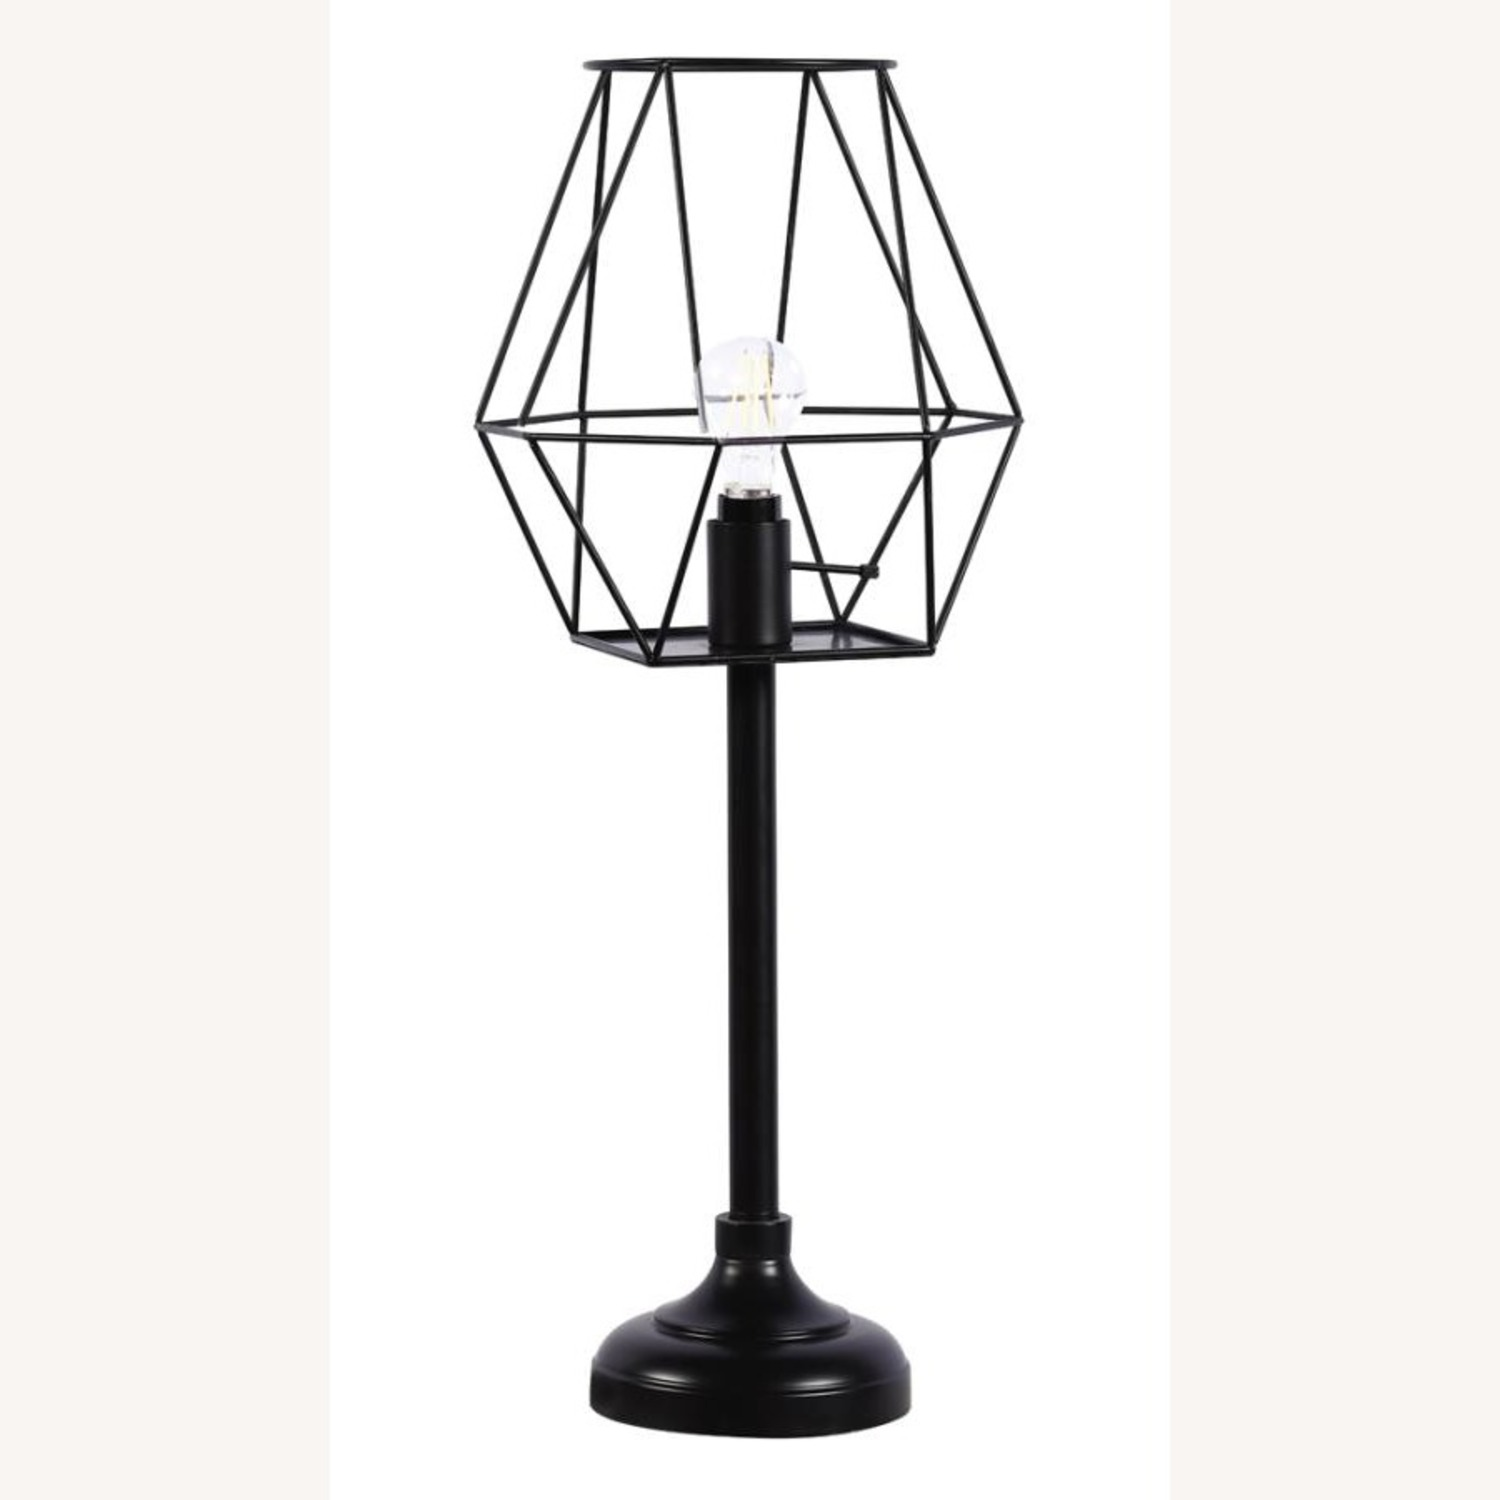 Industrial Decor Table Lamp In Black Metal Finish - image-1